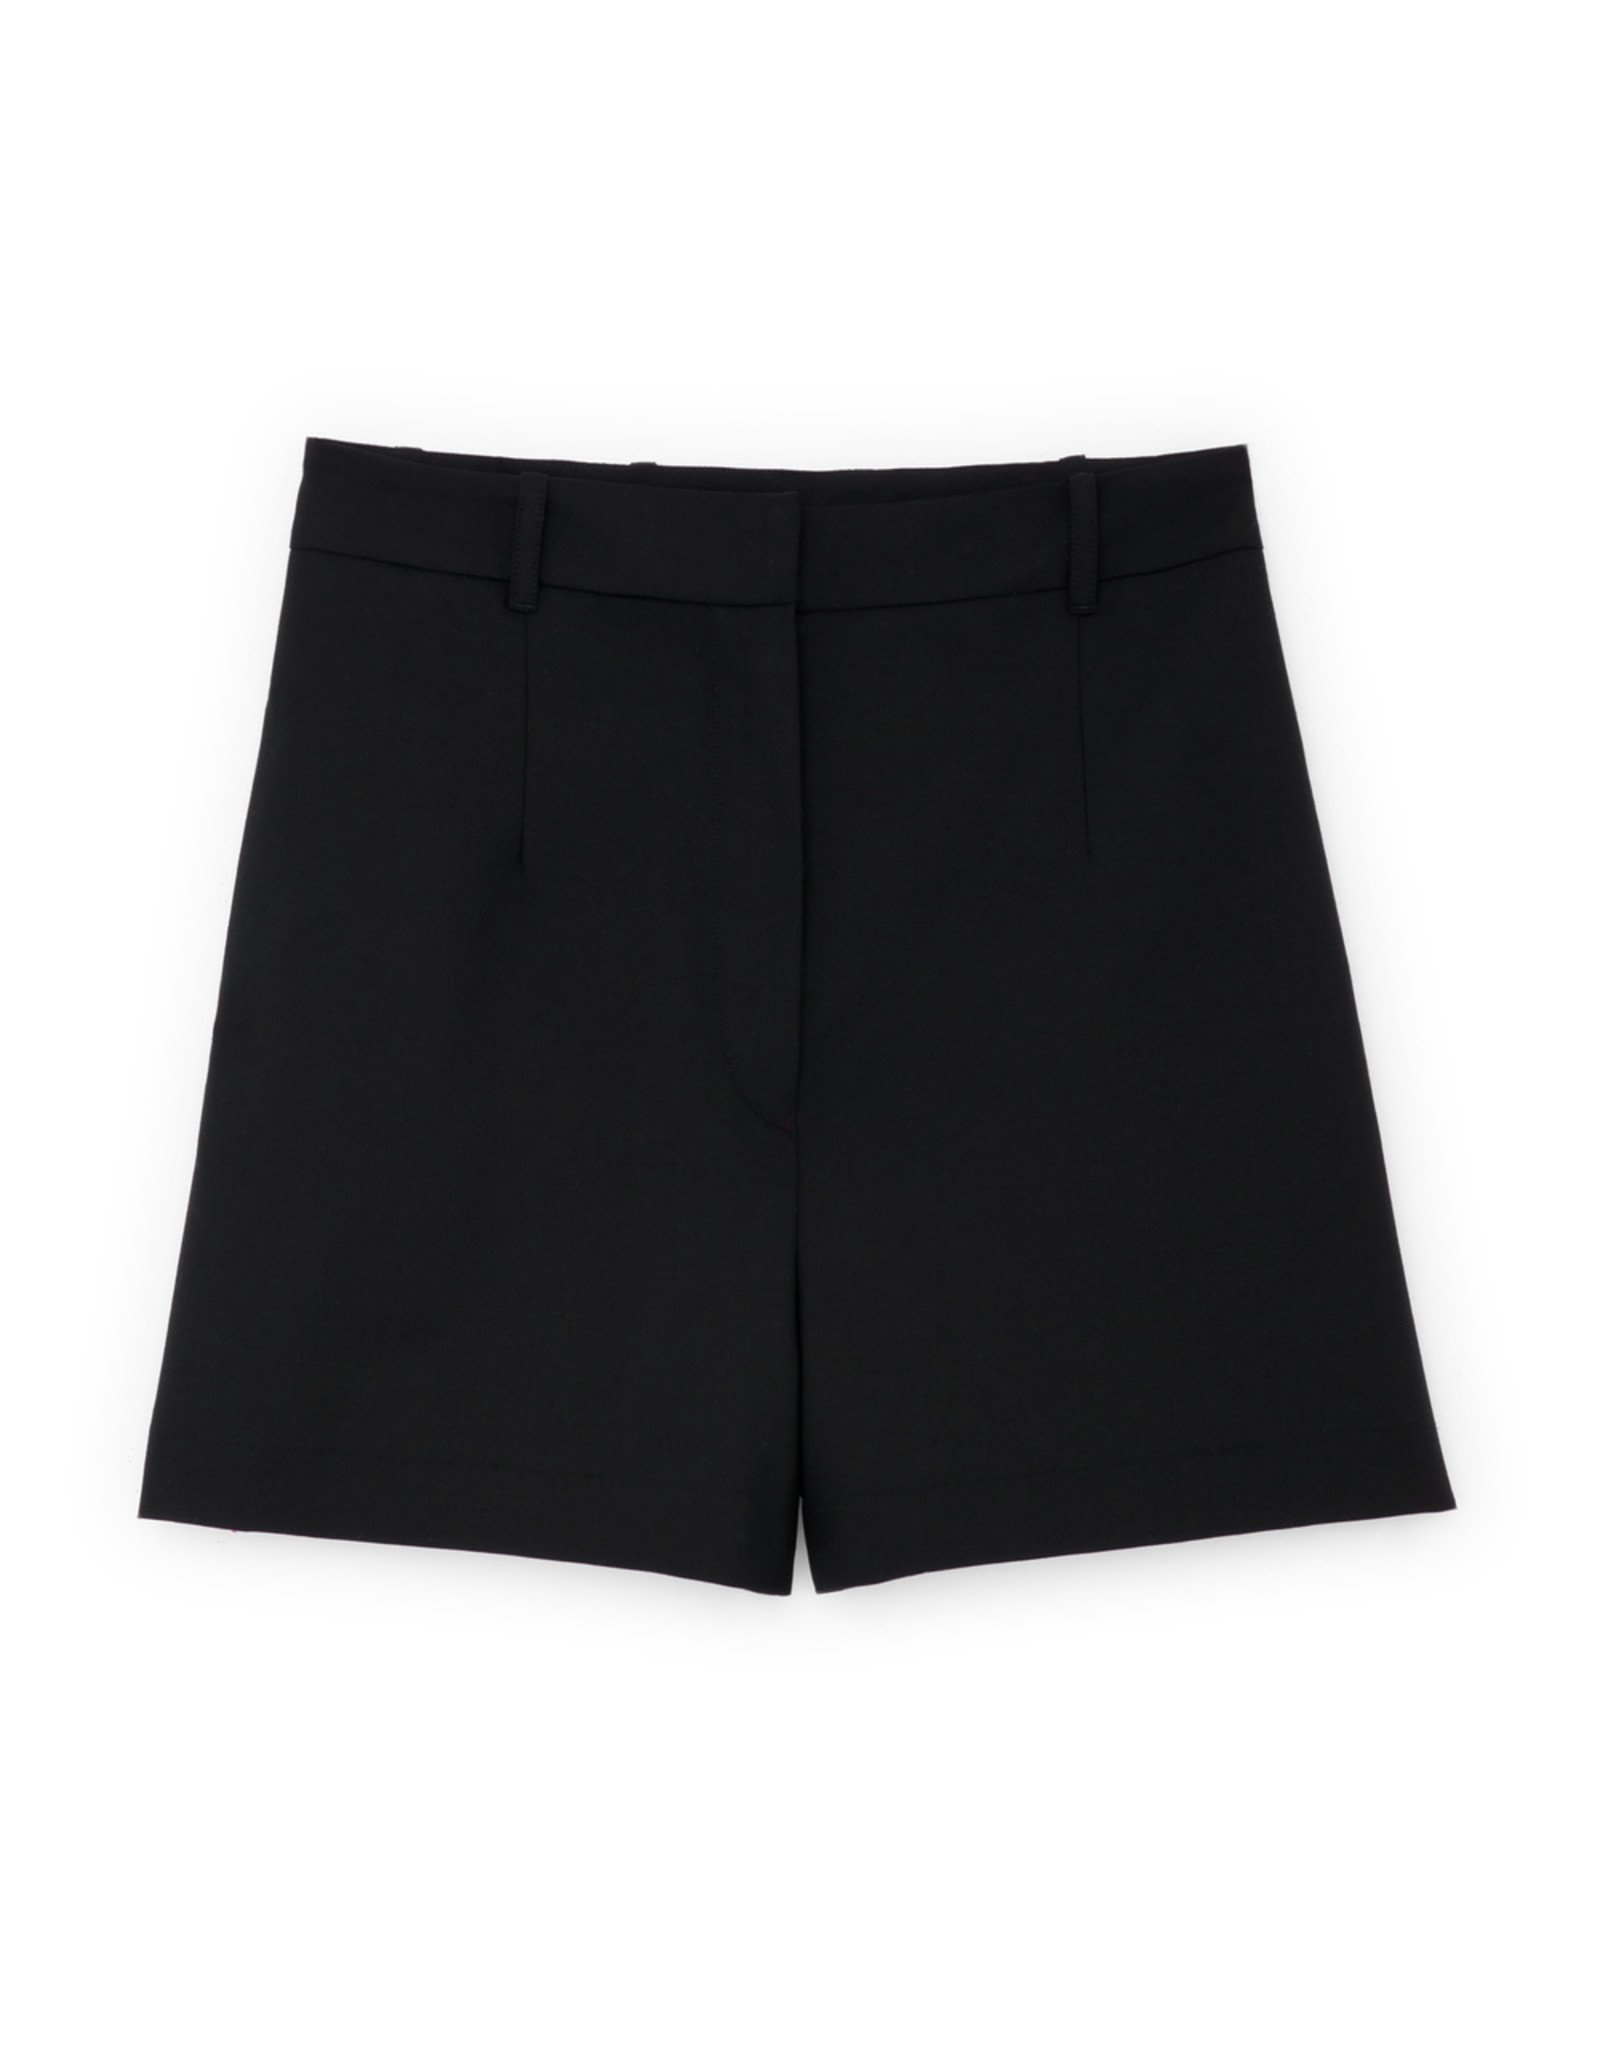 G. Label G. Label Anthony Tailored Shorts (Color: Black, Size: 0)